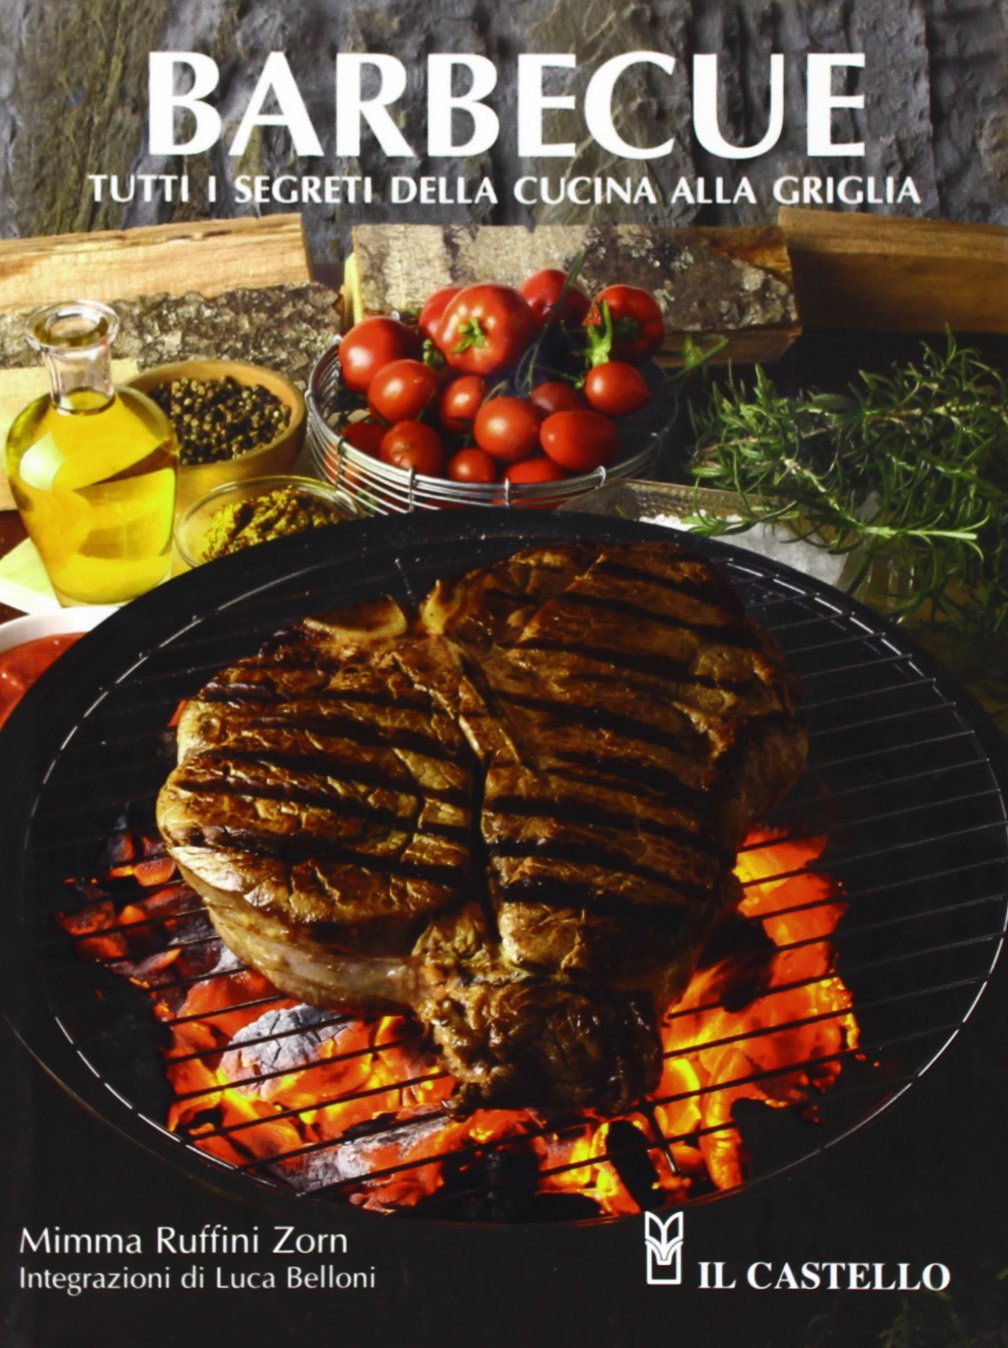 Letture da barbecue